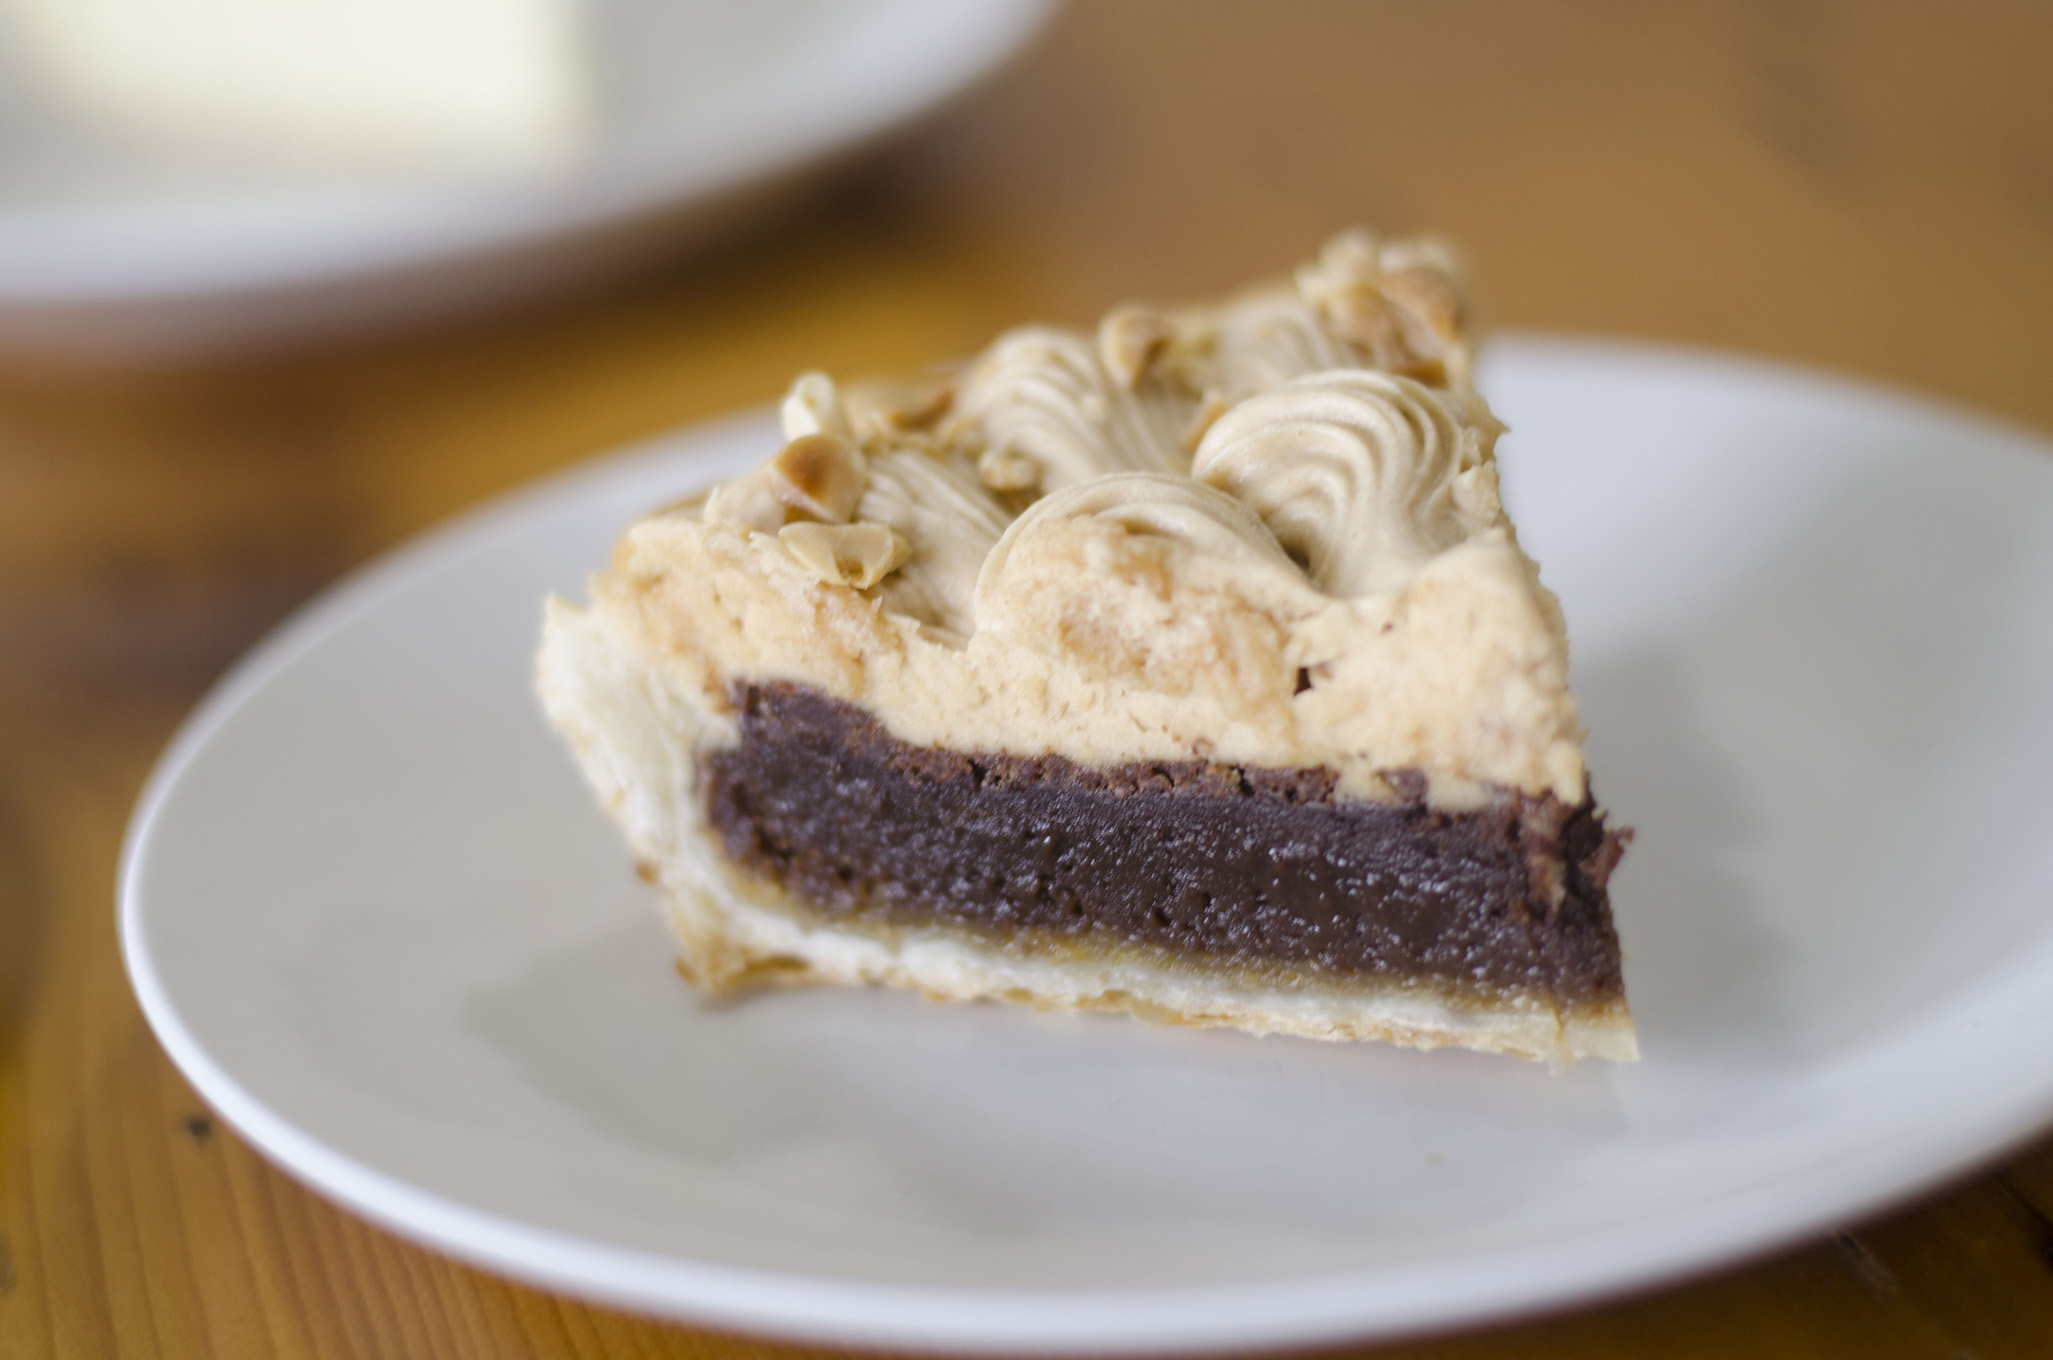 Chocolate Peanut Butter pie from Riverside Pie Cafe in Windsor, Ontario.